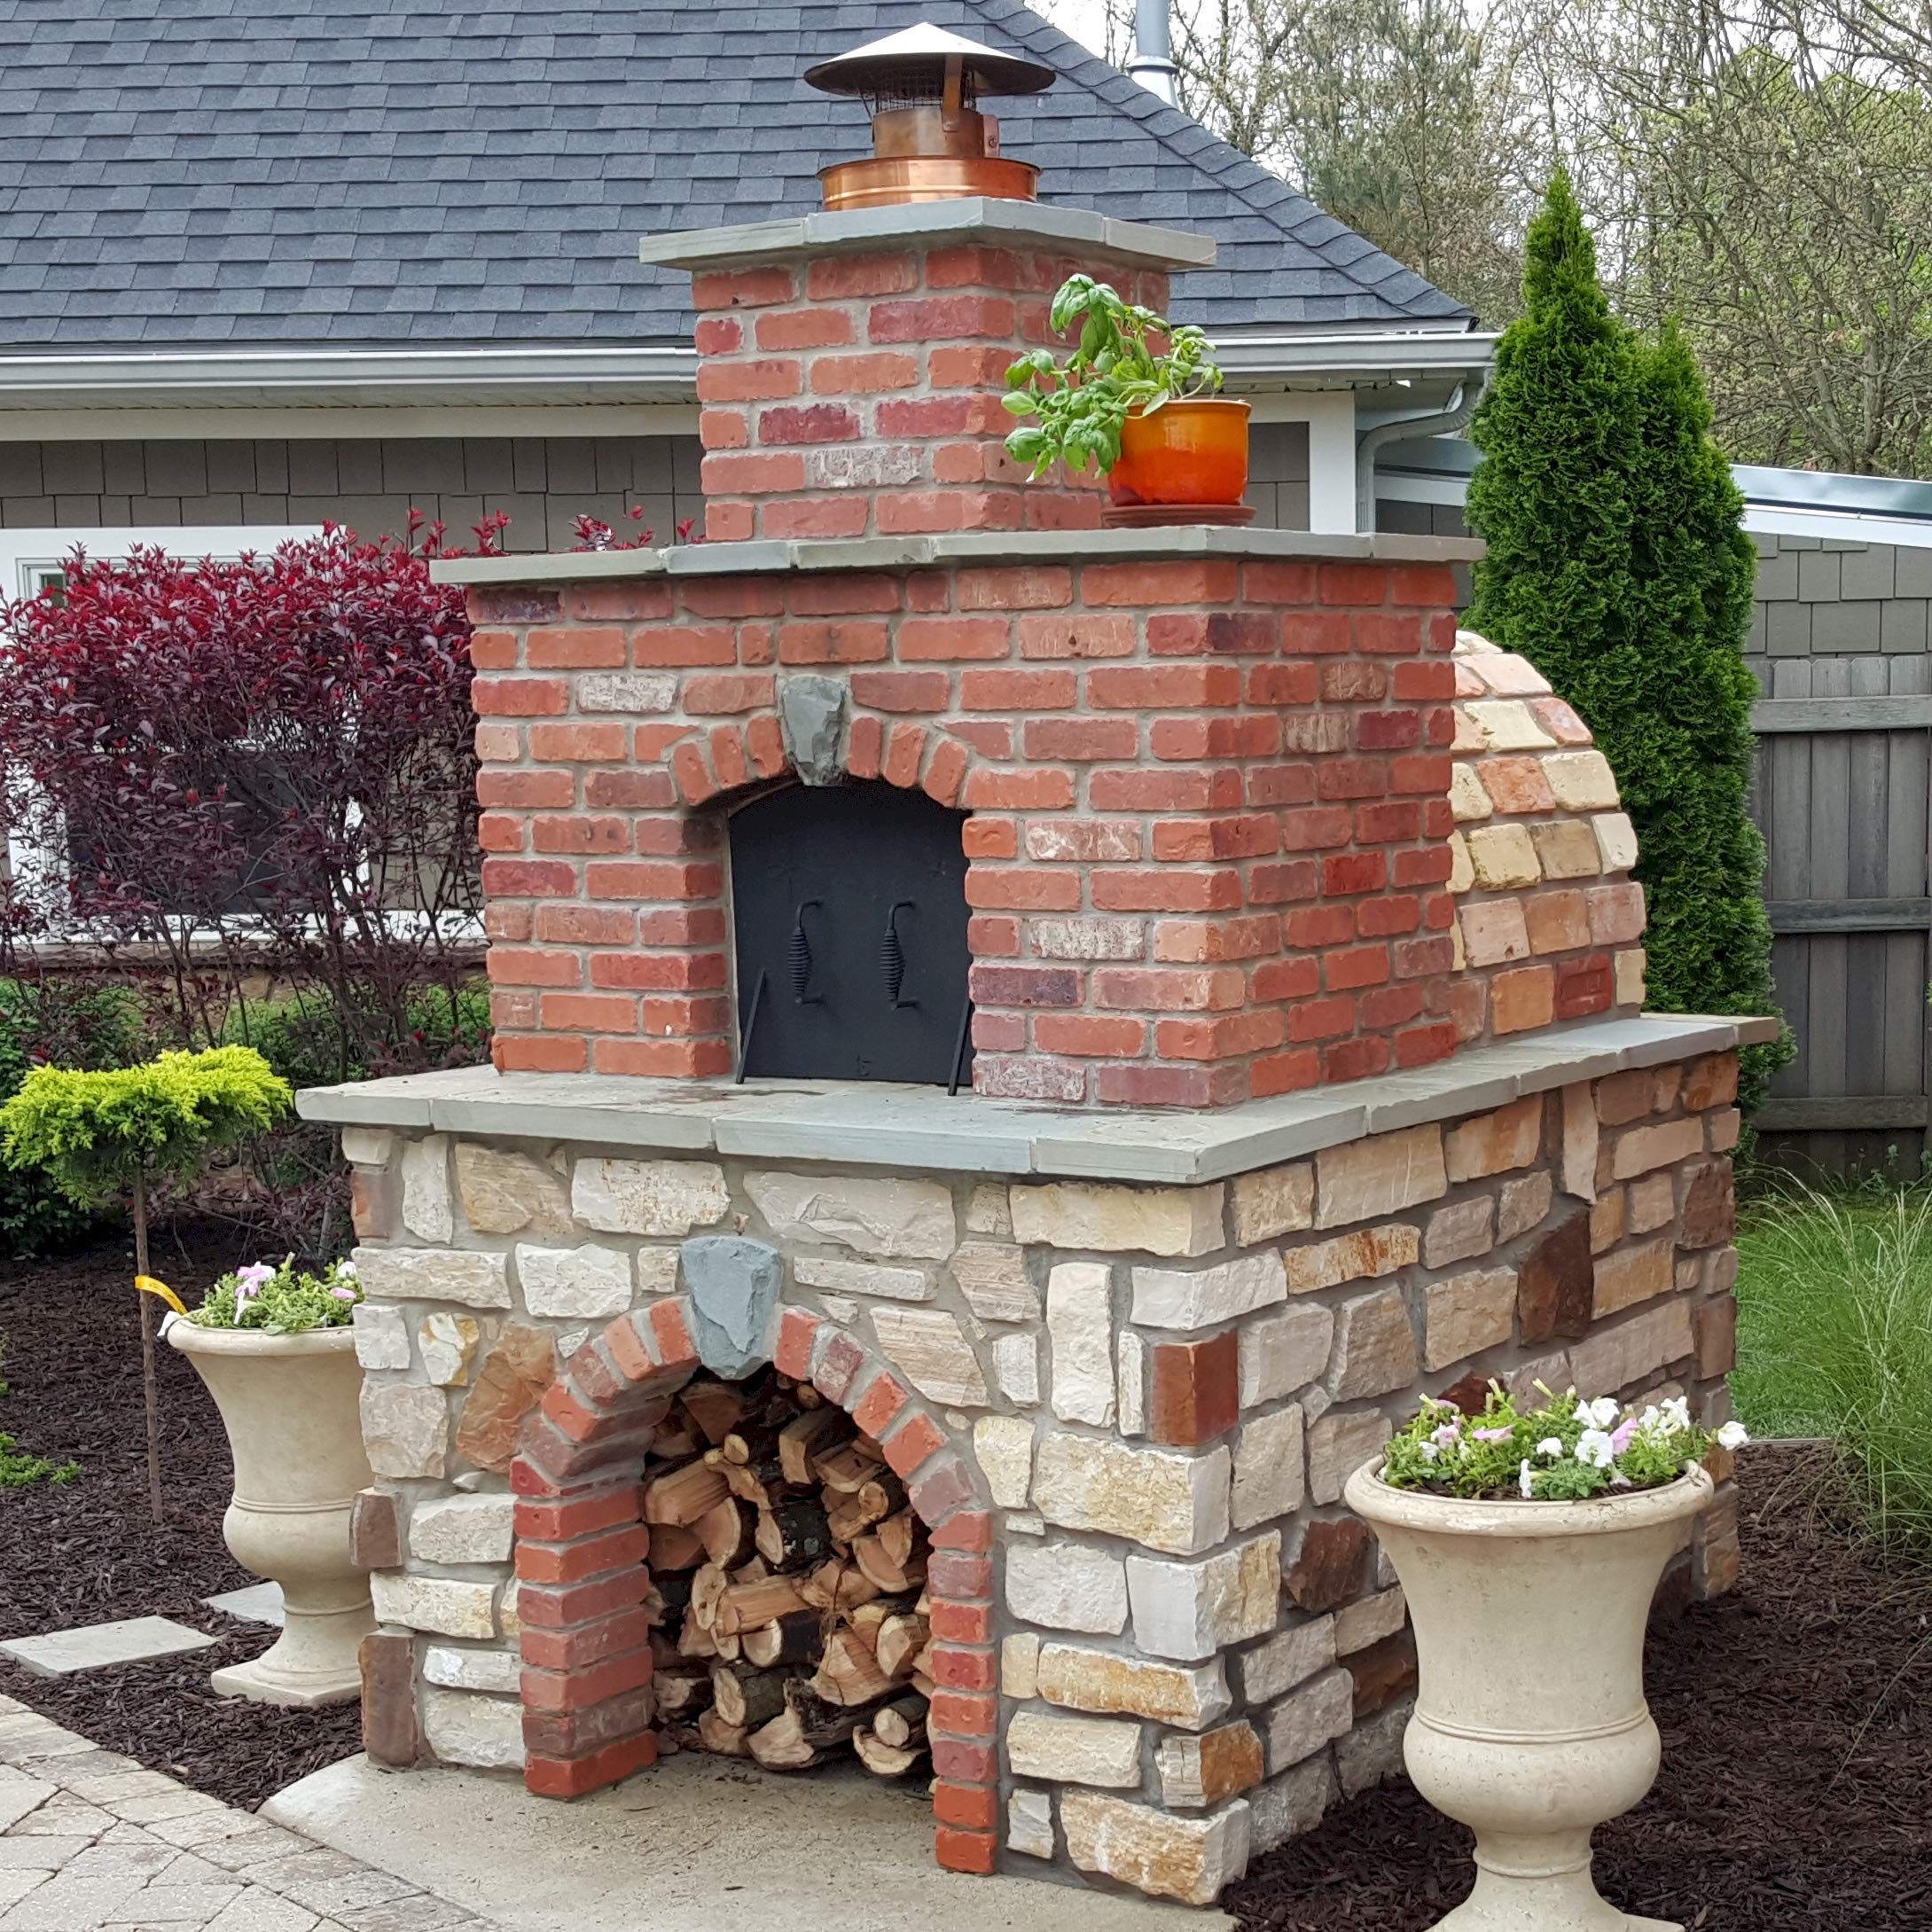 Brick Pizza Oven • Wood Fired Pizza Oven - Build a Large Brick Oven in Your Backyard with The Foam Mattone Barile Grande DIY Brick Oven Form and Locally sourced Masonry Materials. by BrickWood Ovens